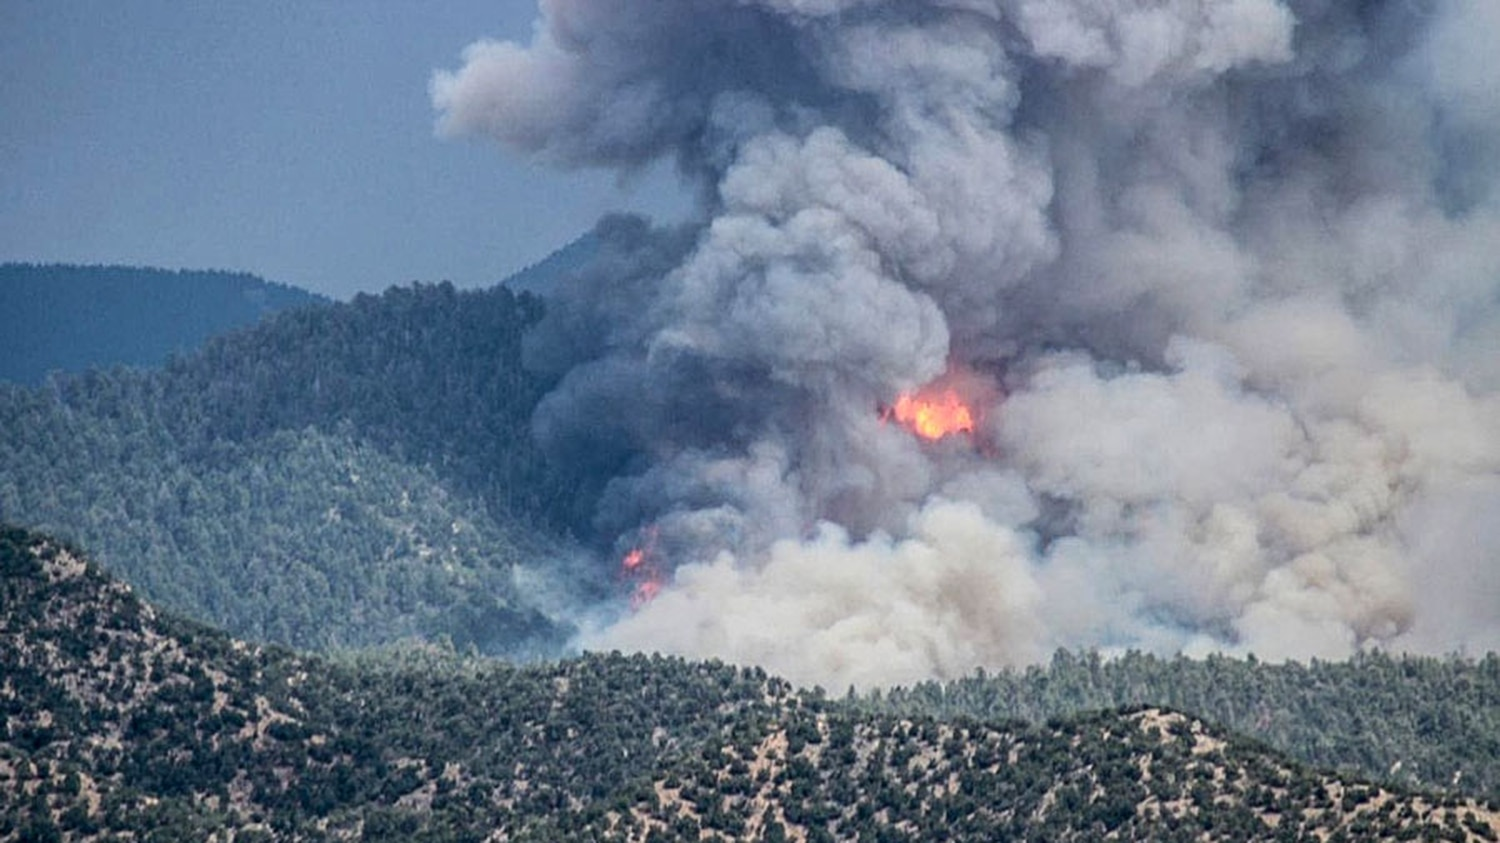 The Medio Fire burned 4,010 acres in the Santa Fe National Forest. It is now considered 100% contained.